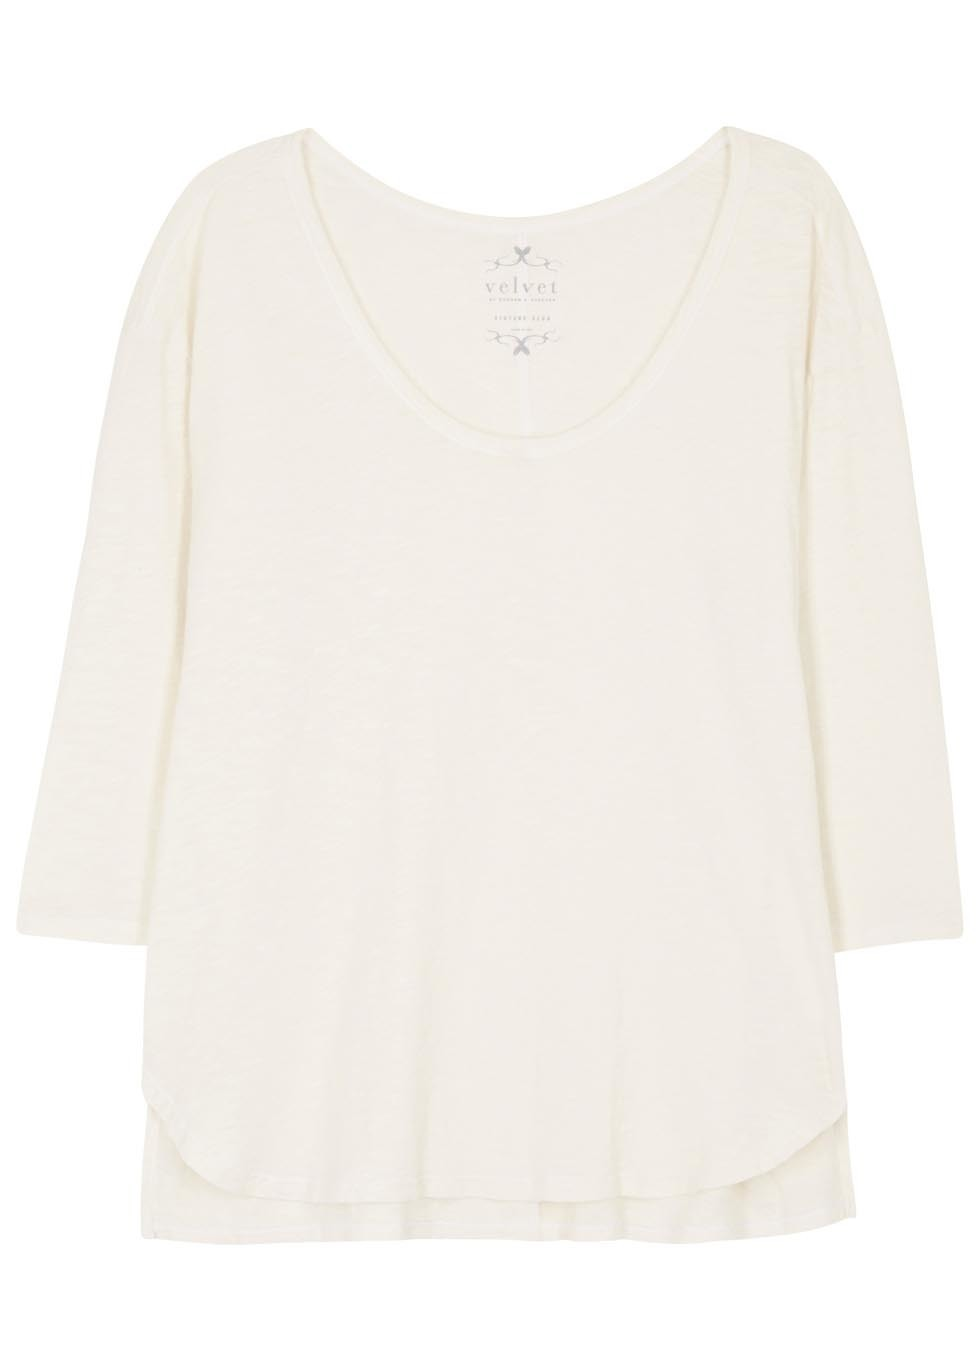 Picarda Ivory Slubbed Cotton Top - neckline: round neck; pattern: plain; predominant colour: ivory/cream; occasions: casual; length: standard; style: top; fibres: cotton - 100%; fit: body skimming; sleeve length: long sleeve; sleeve style: standard; pattern type: fabric; texture group: jersey - stretchy/drapey; season: s/s 2016; wardrobe: basic